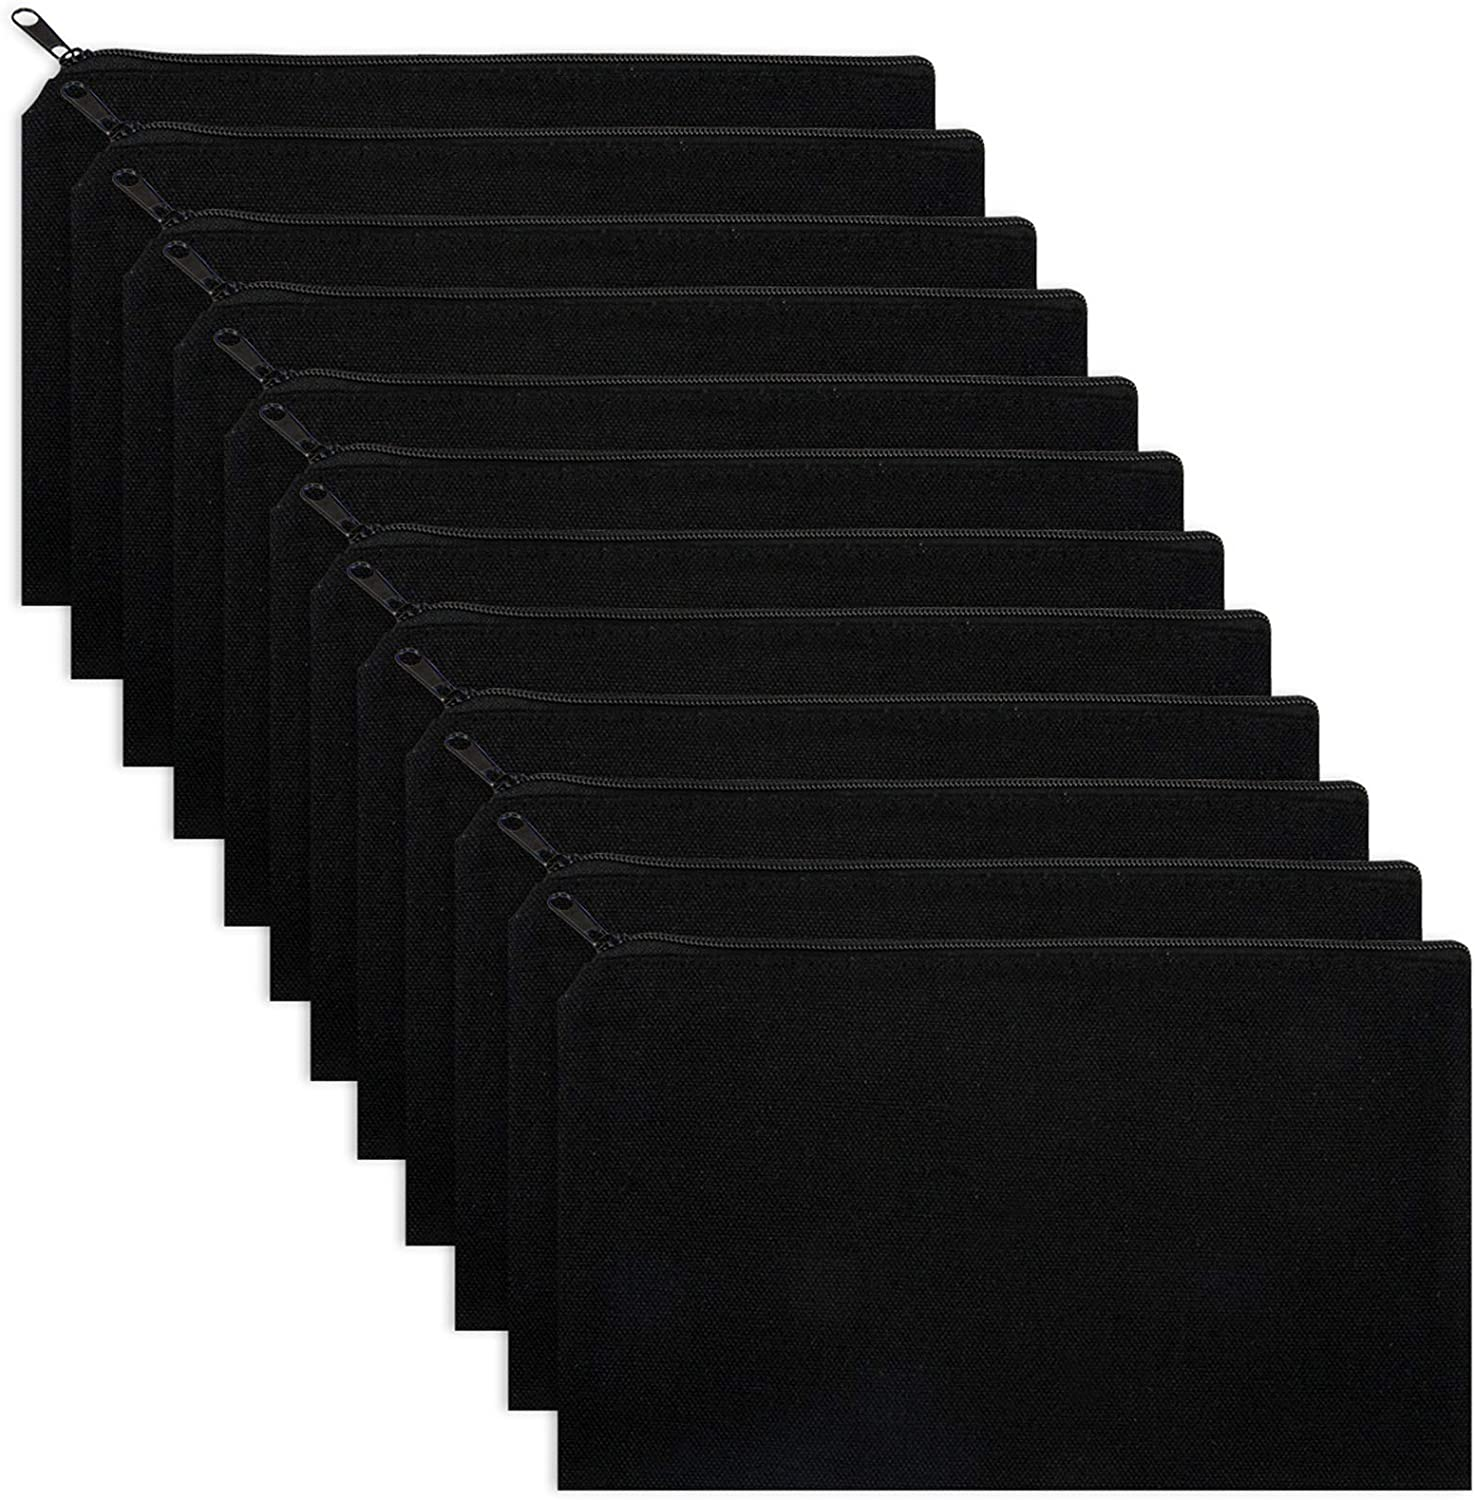 Alphatool 12 Pack Black Outstanding DIY Today's only Craft Canvas Pen Pencil Bag Case- 8